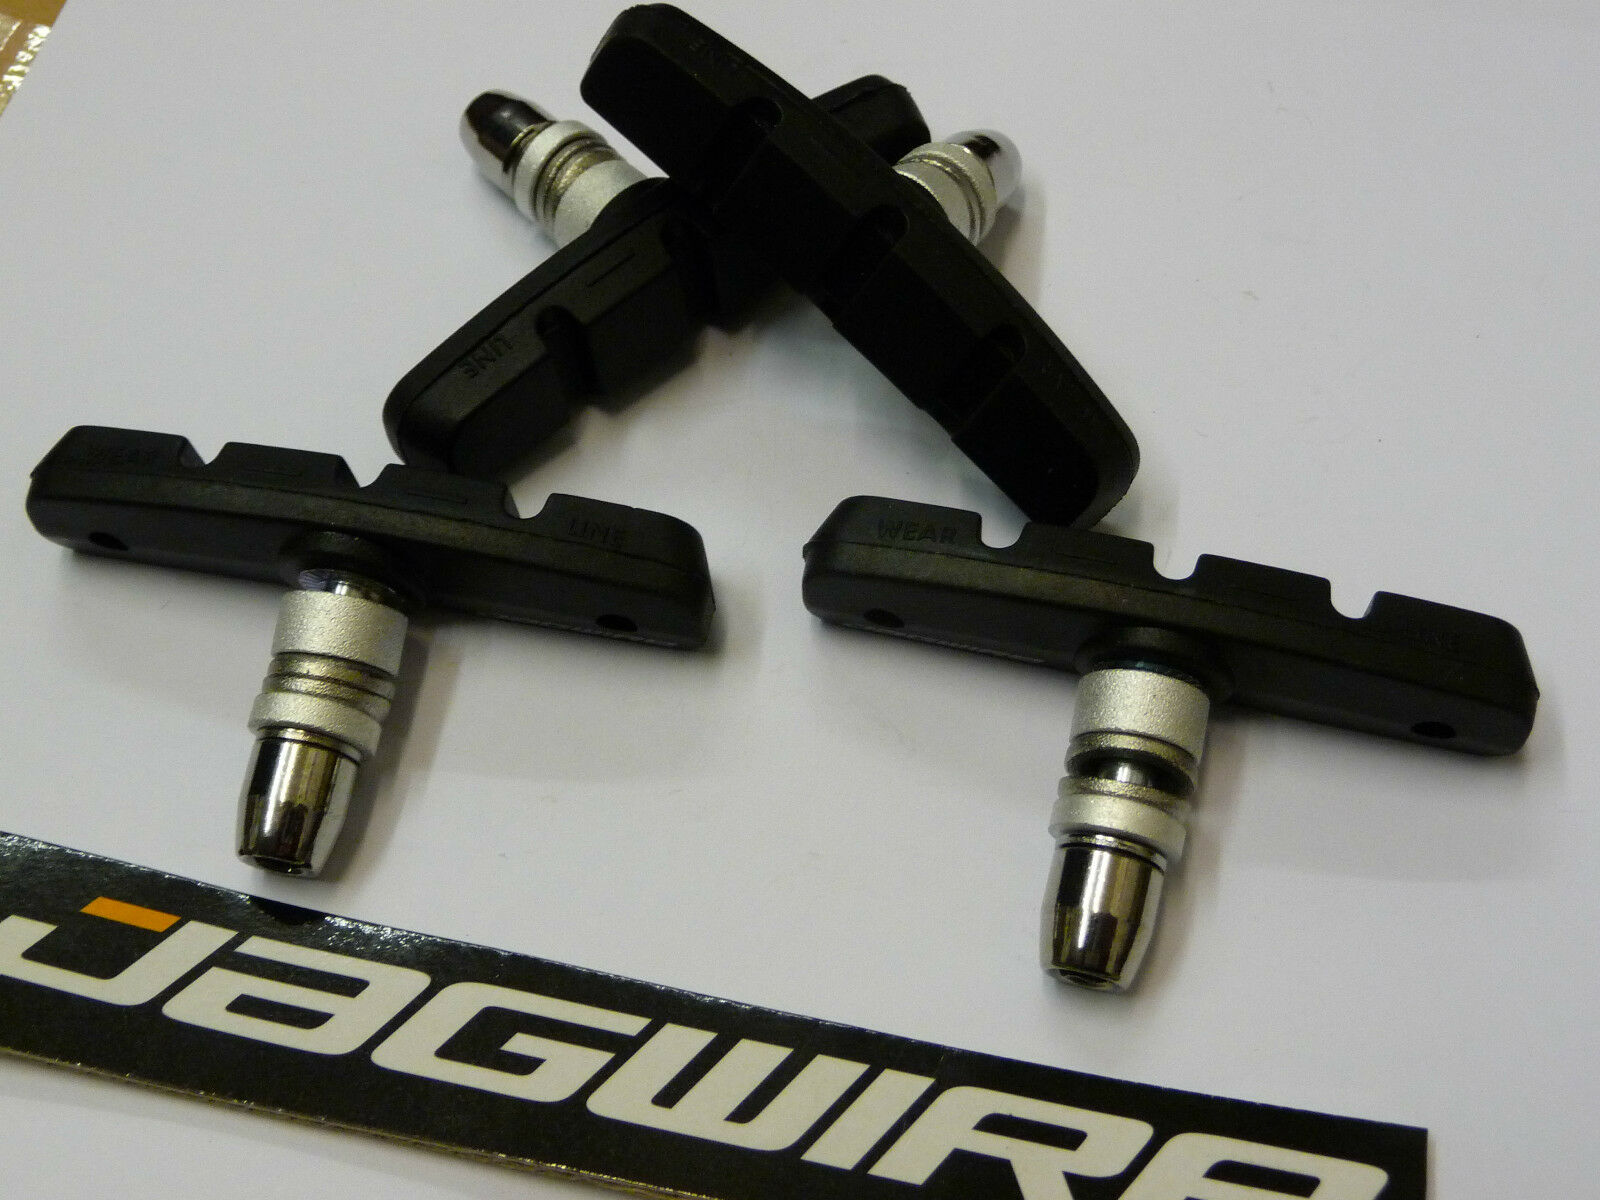 *FRONT* Jagwire V Brake Blocks Pads Bike MTB Hybrid Mountain Bike NEW Centered